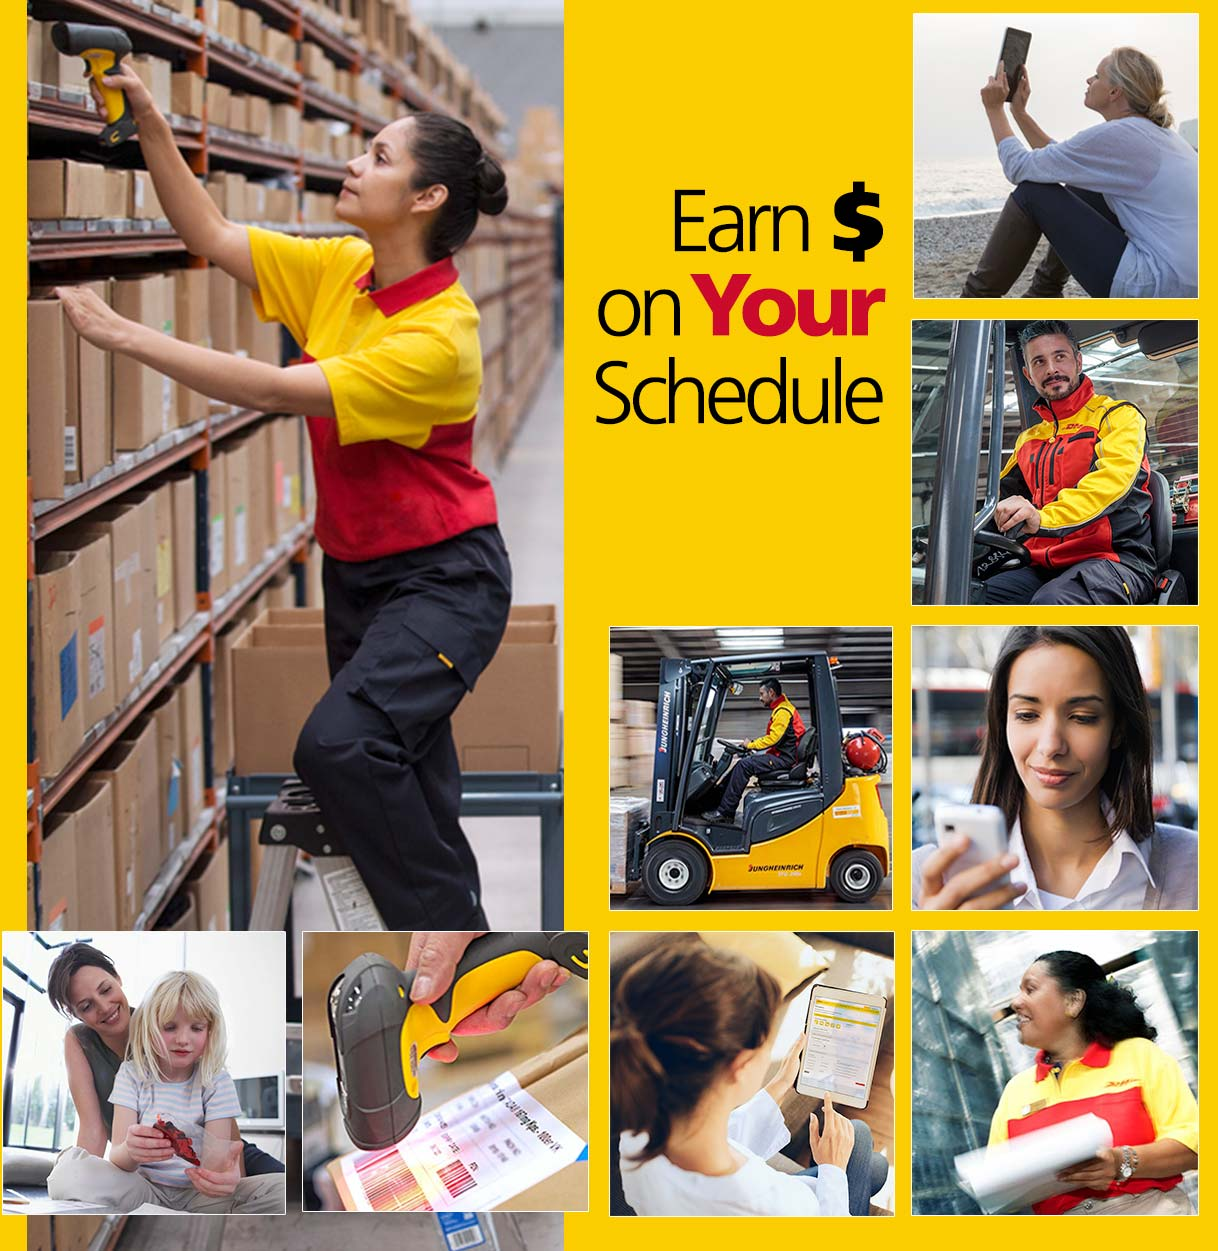 dhl-36263-wheniwork-collage.jpg